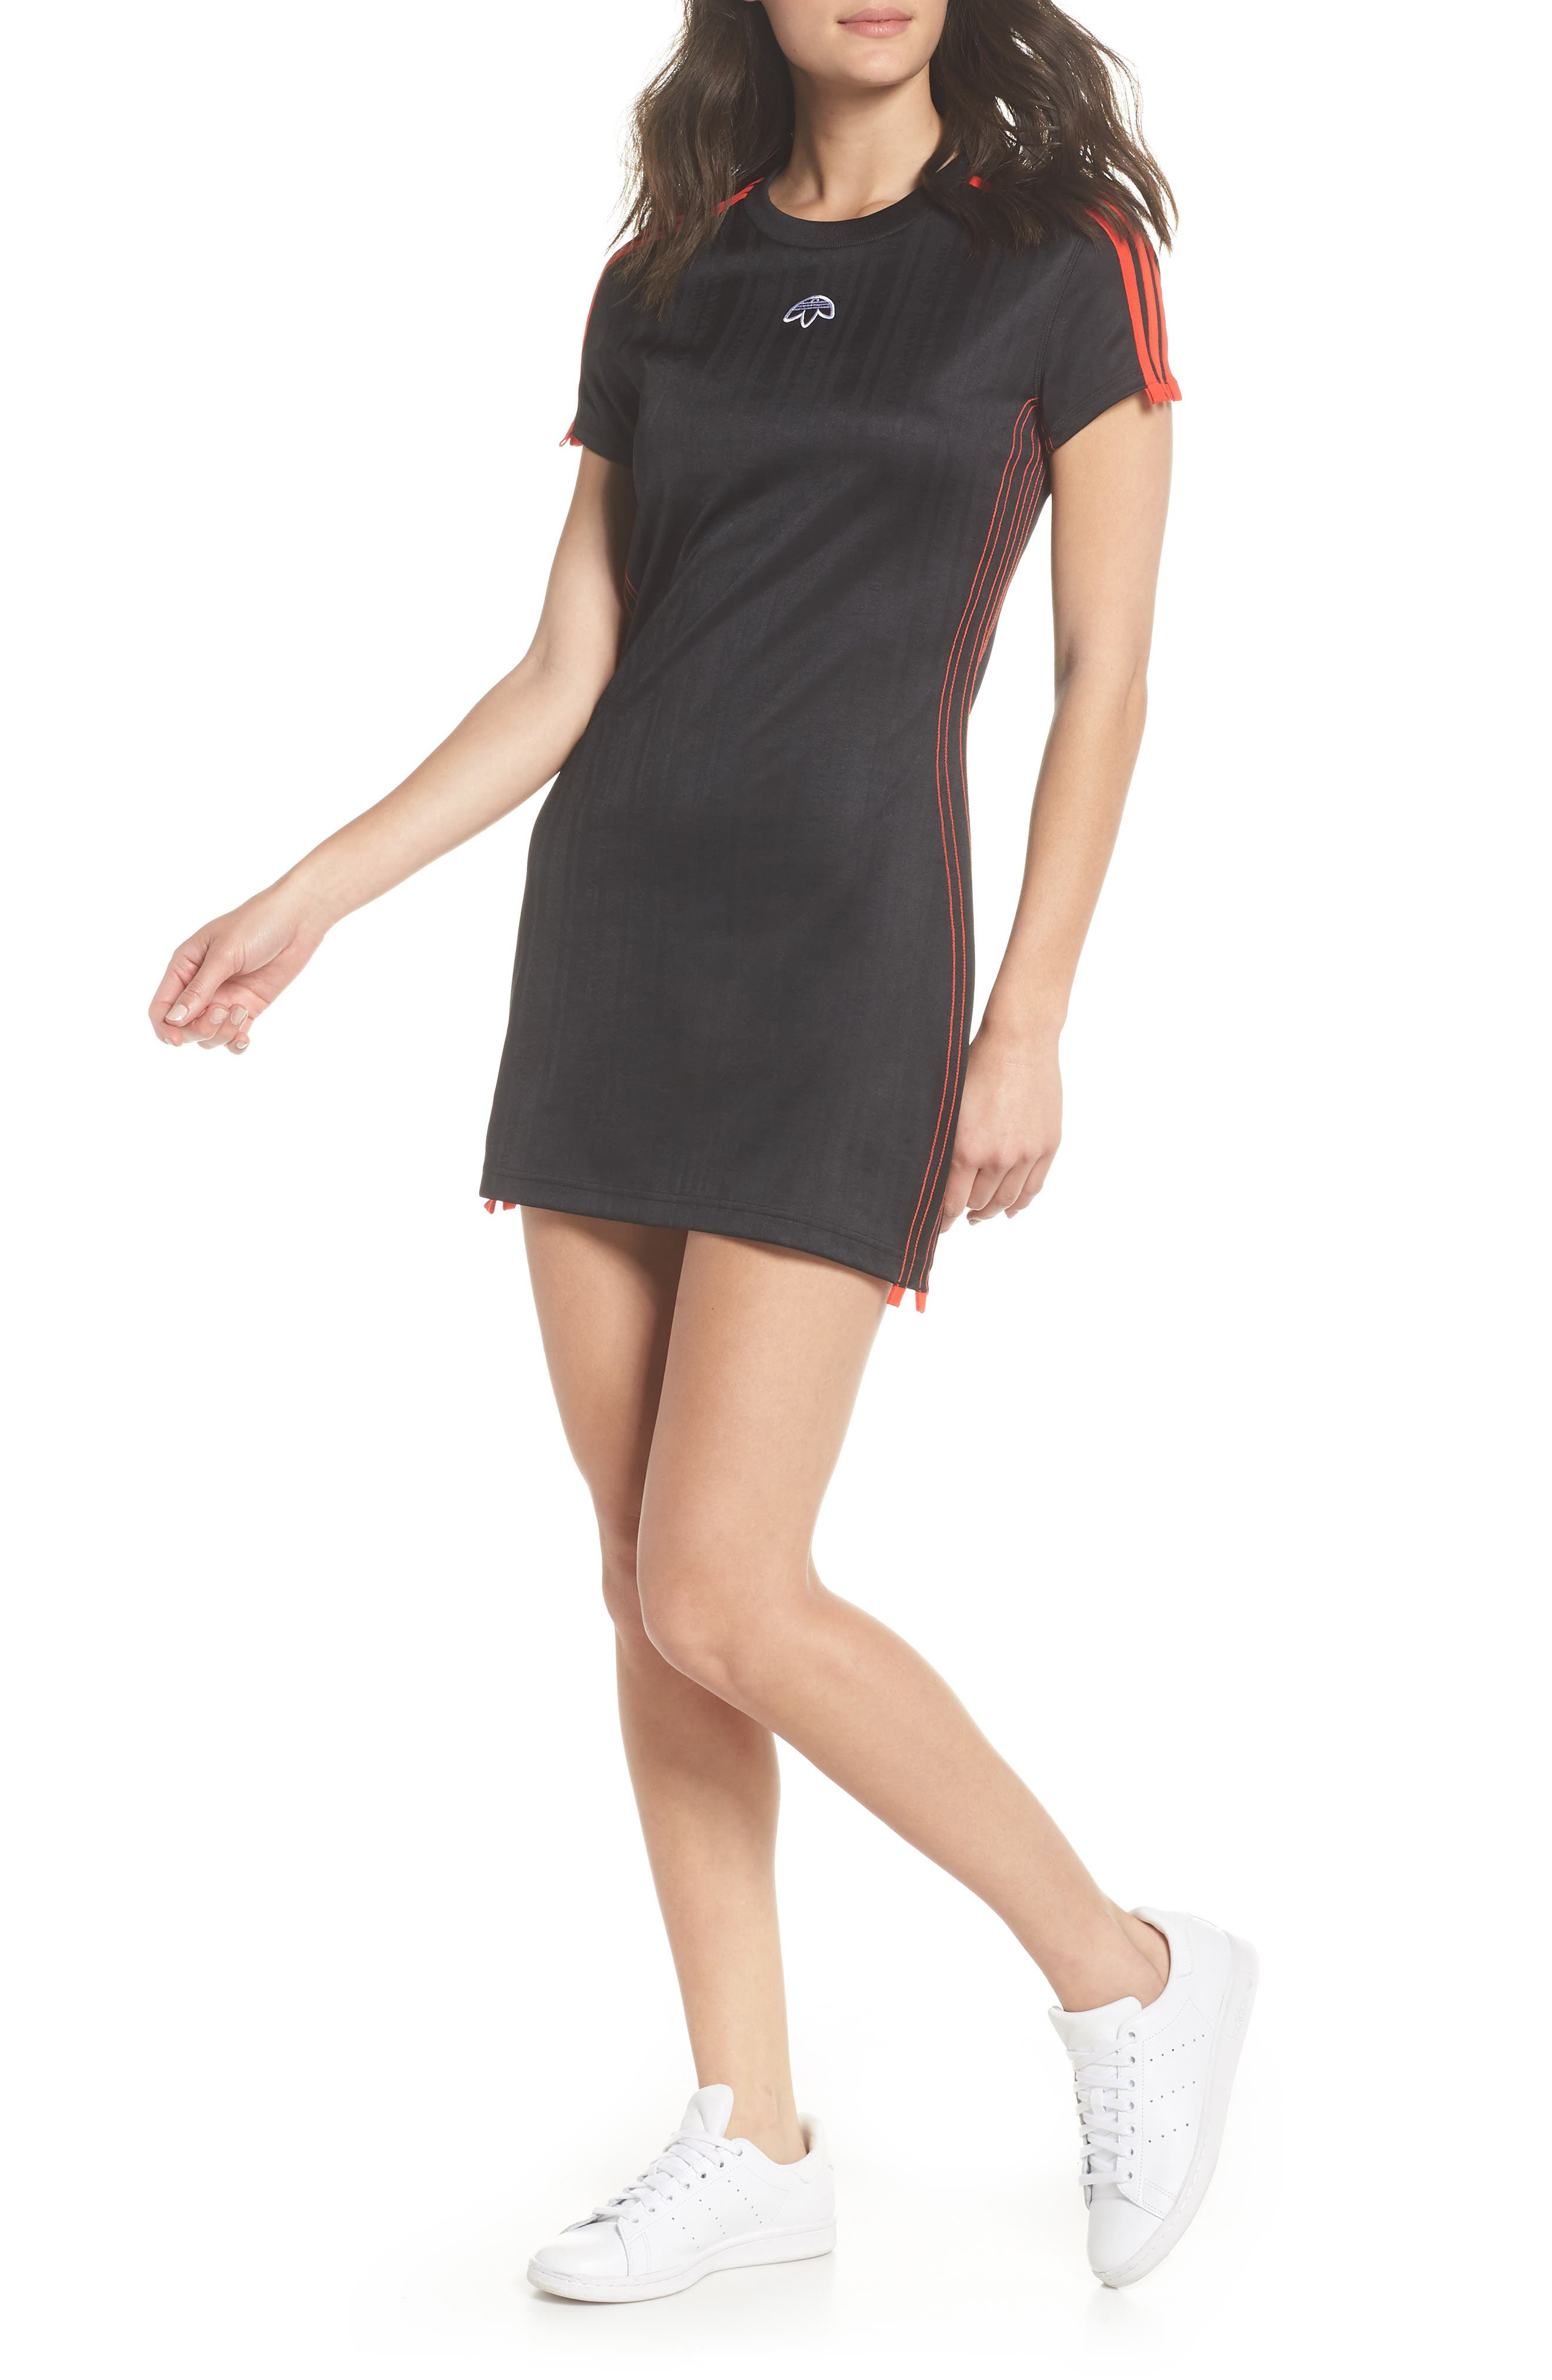 adidas x Alexander Wang T-Shirt Dress